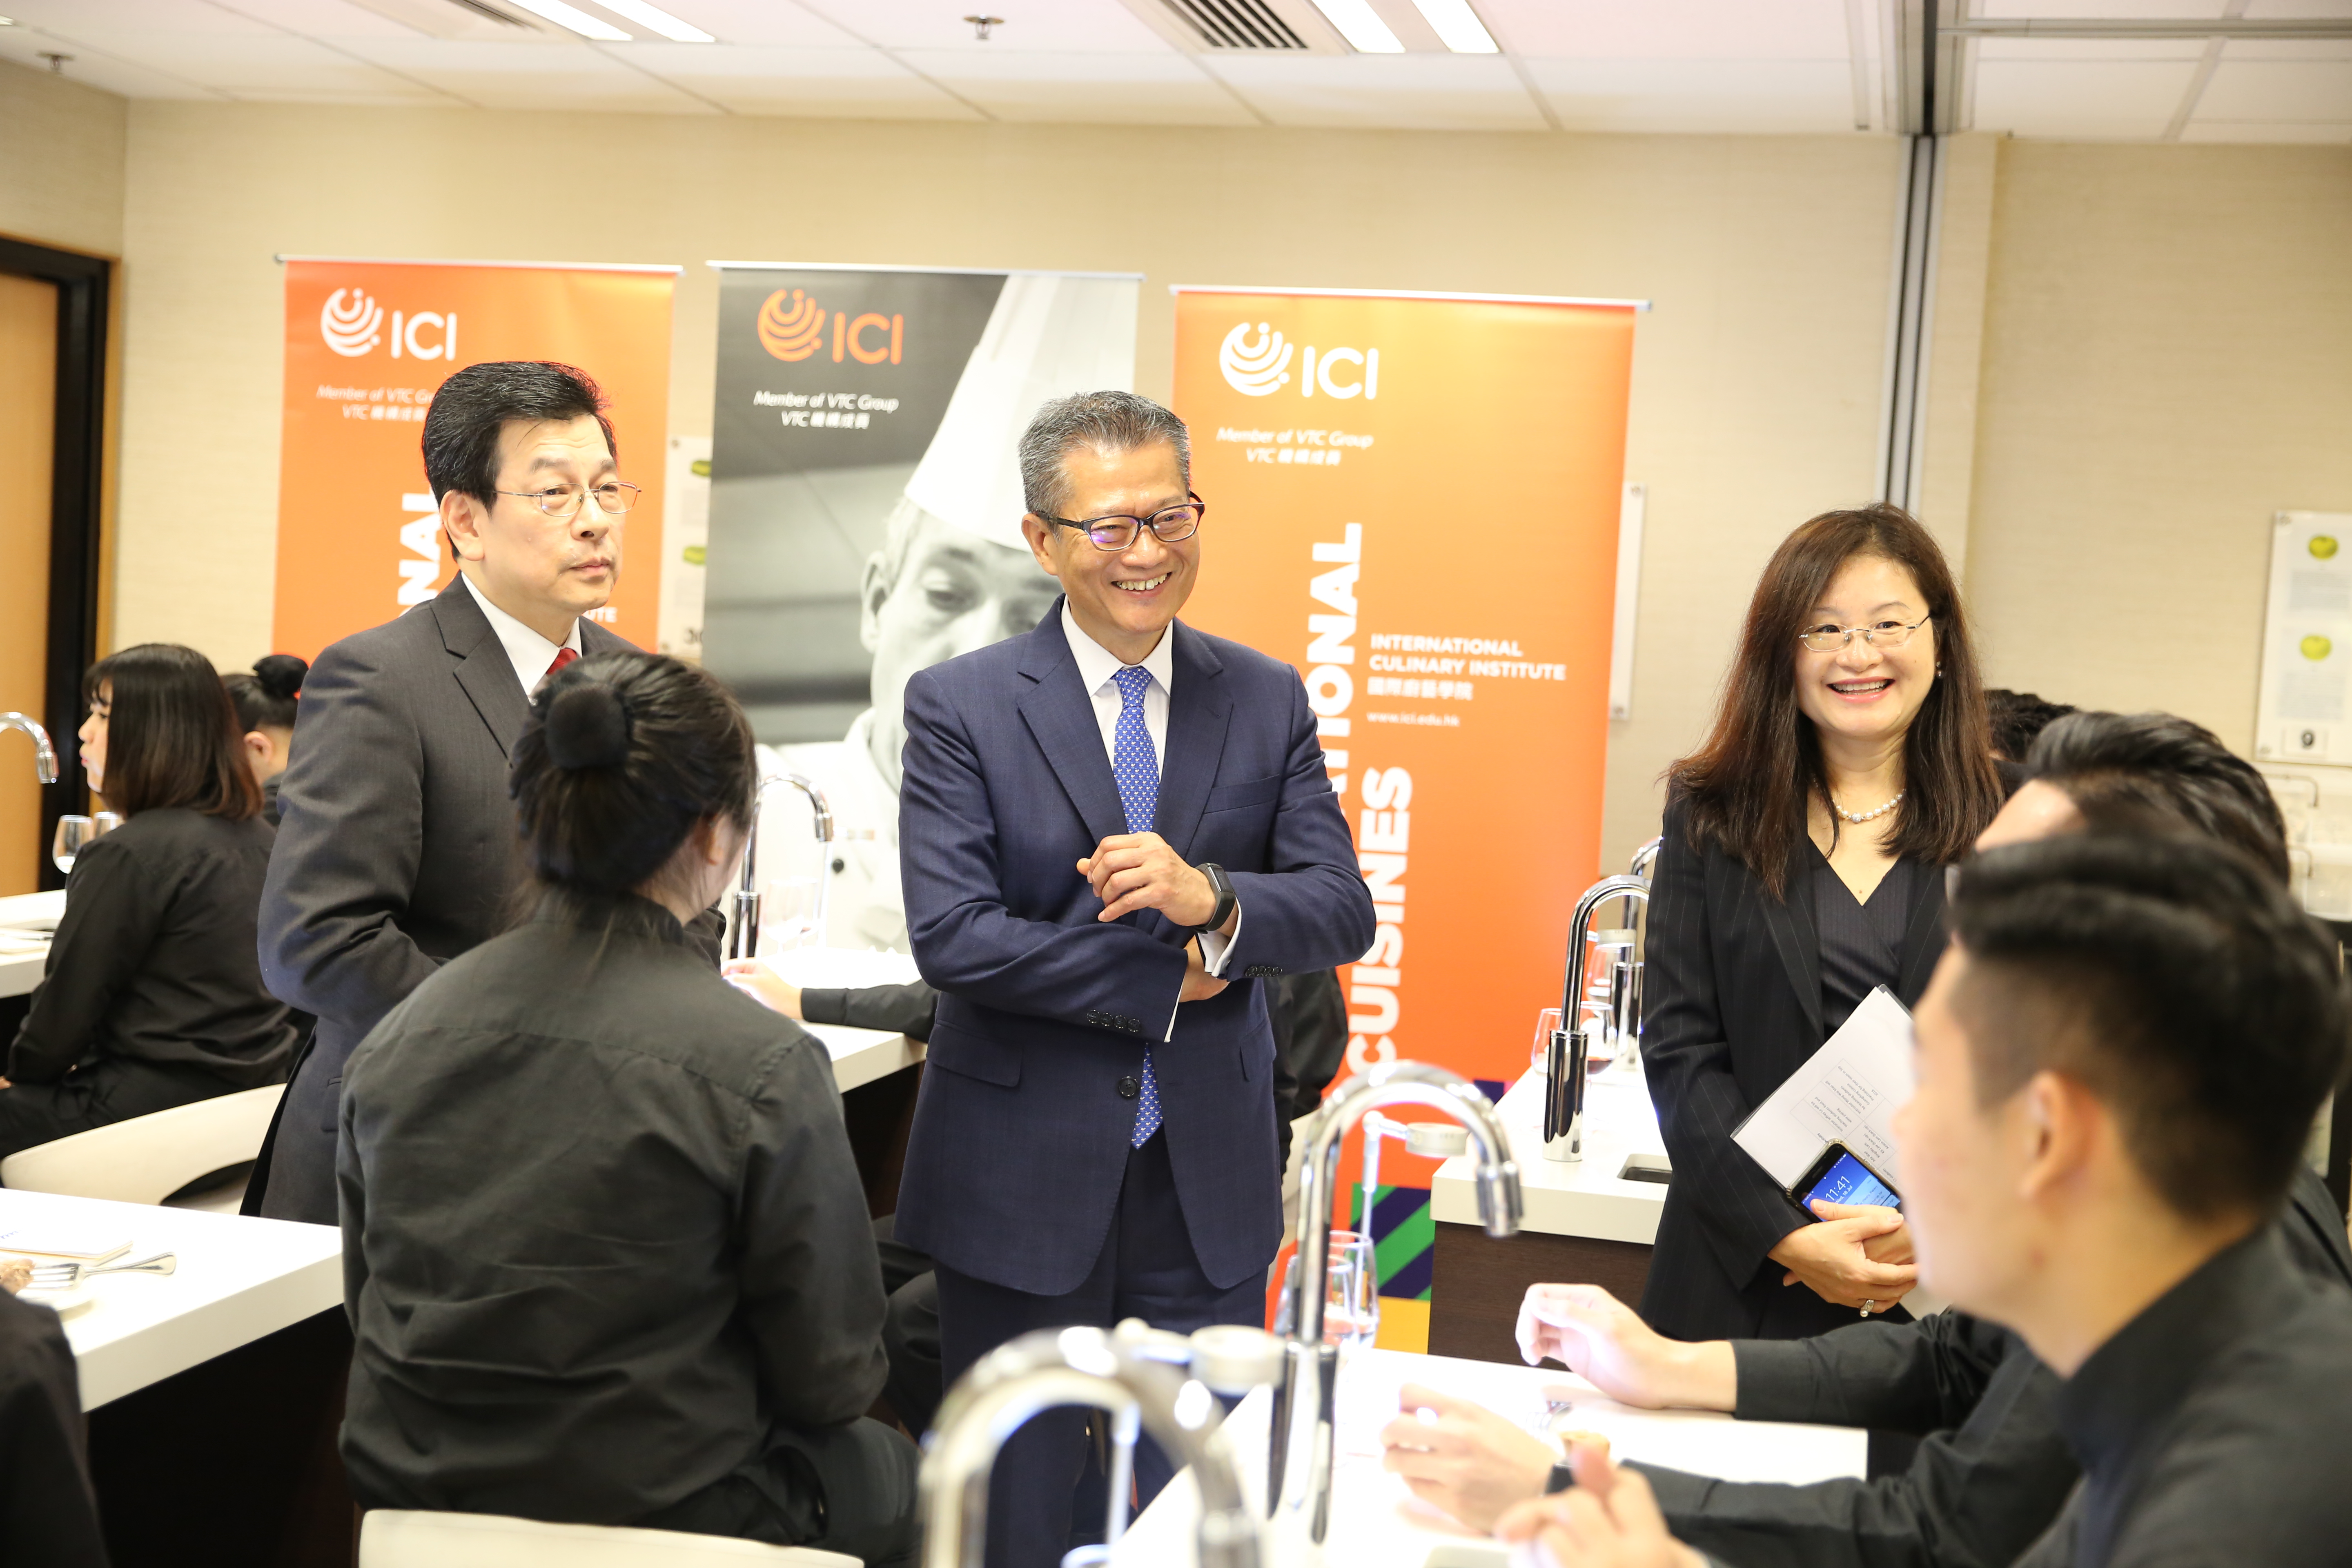 Mr Paul Chan, Financial Secretary of HKSAR visited ICI, CCI & HTI